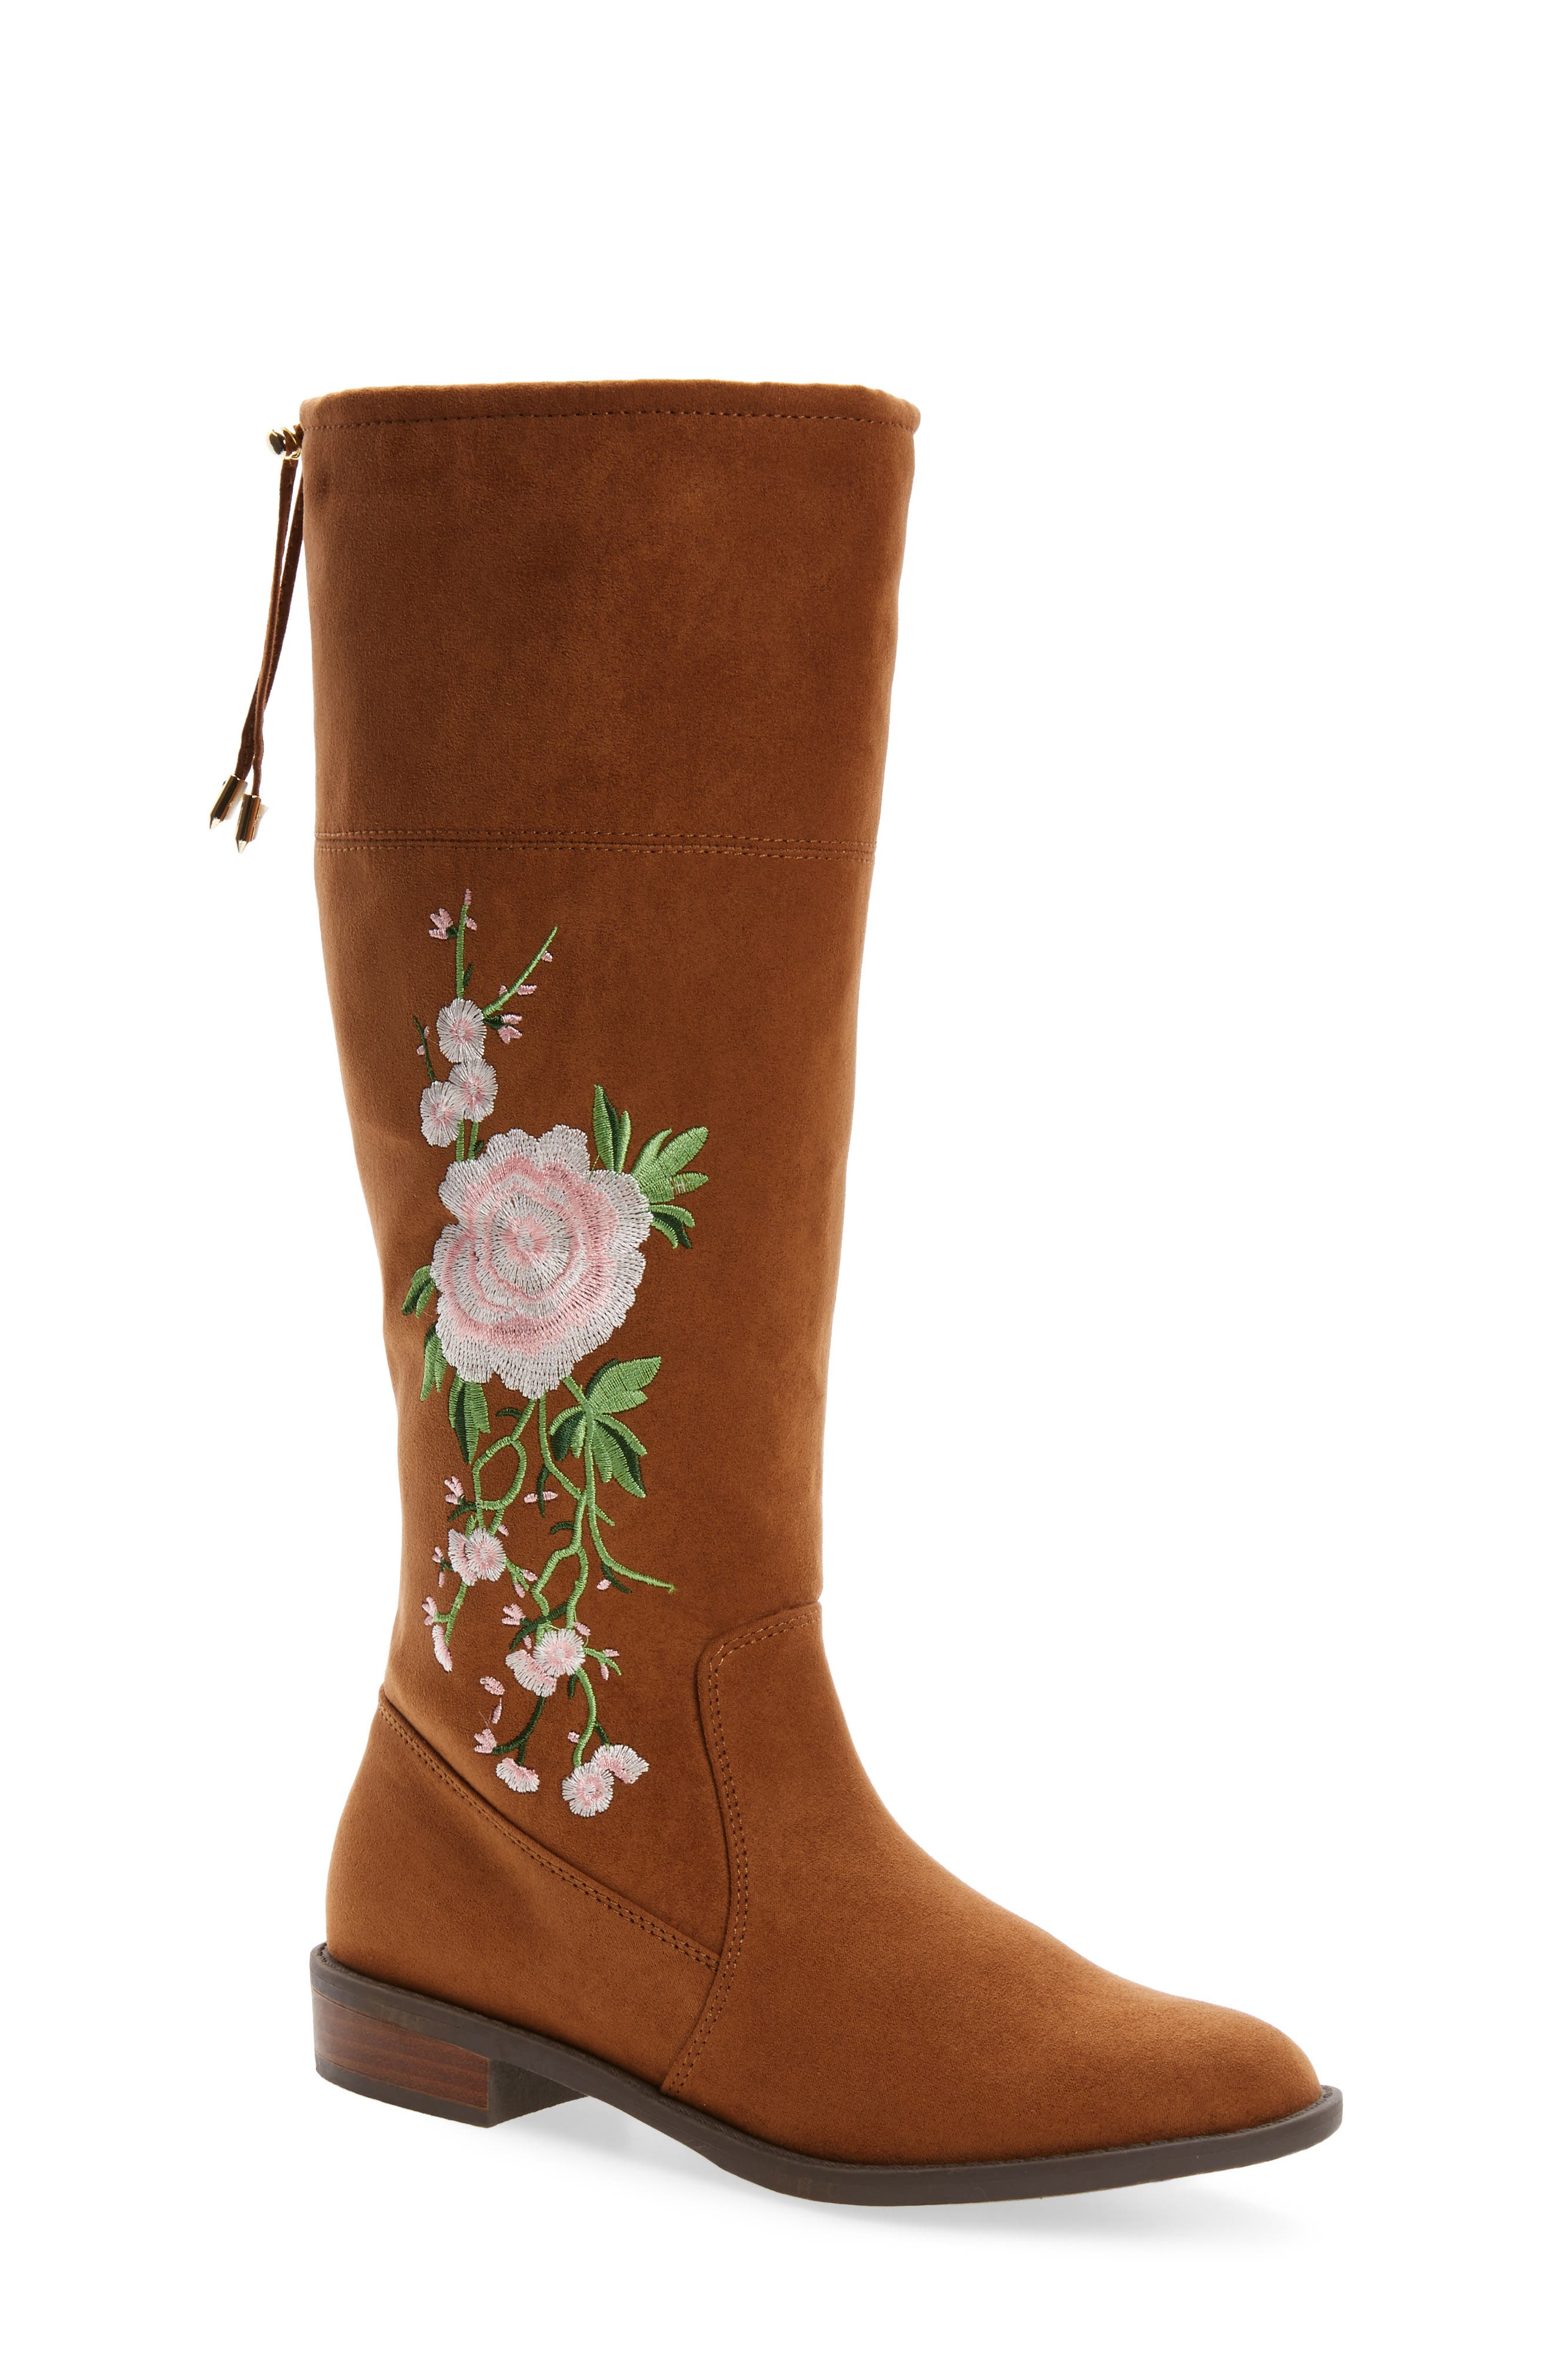 Pia Kent Embroidered Boot,                         Main,                         color, 200